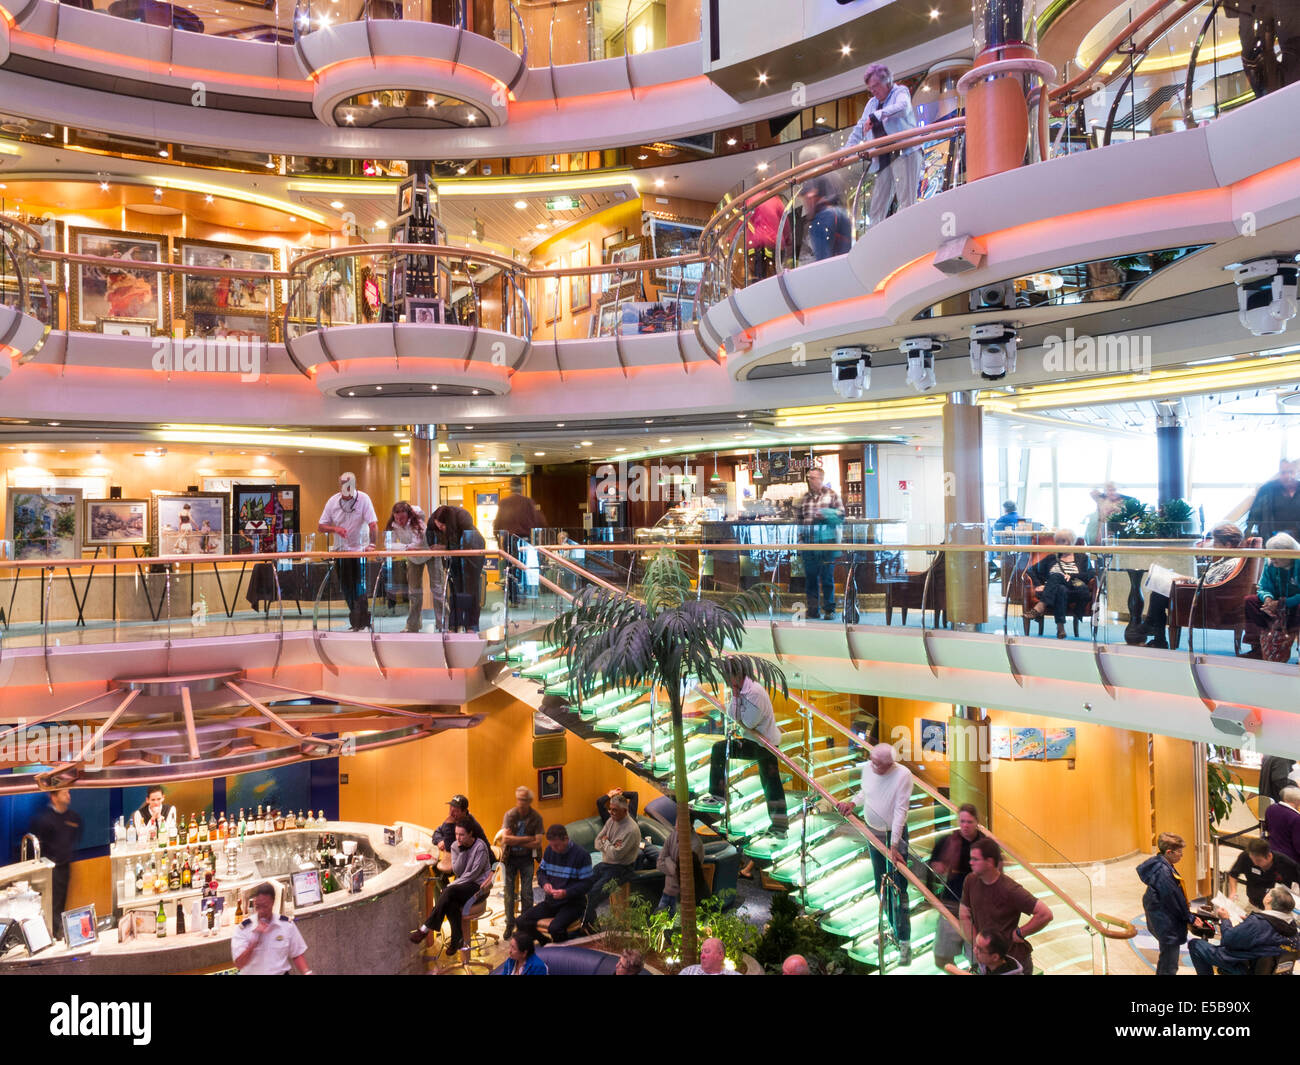 Central Atrium Deck Levels Radiance Of The Seas Cruise Ship Stock - Radiance of the seas